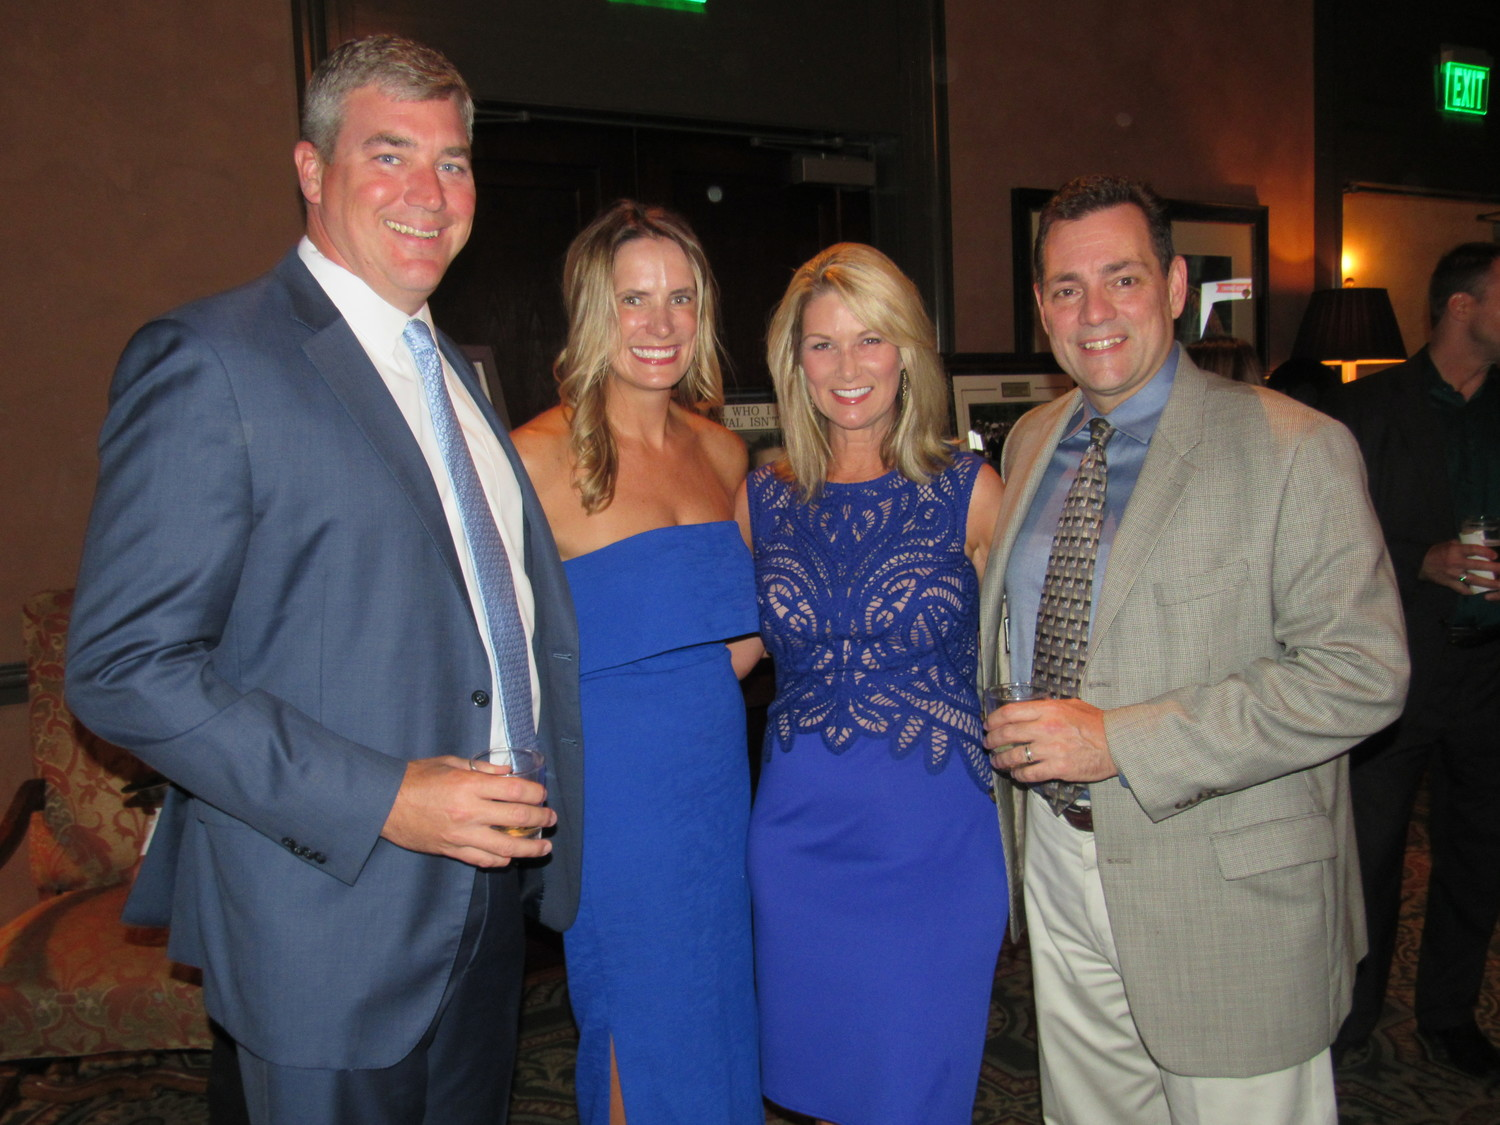 Nemours Chief Legal Officer for Florida Operations Hilary Keeley (center left) attends the event with husband Tom Keeley (from left), Alicia Booth Sprecher and Dr. Rob Sprecher.